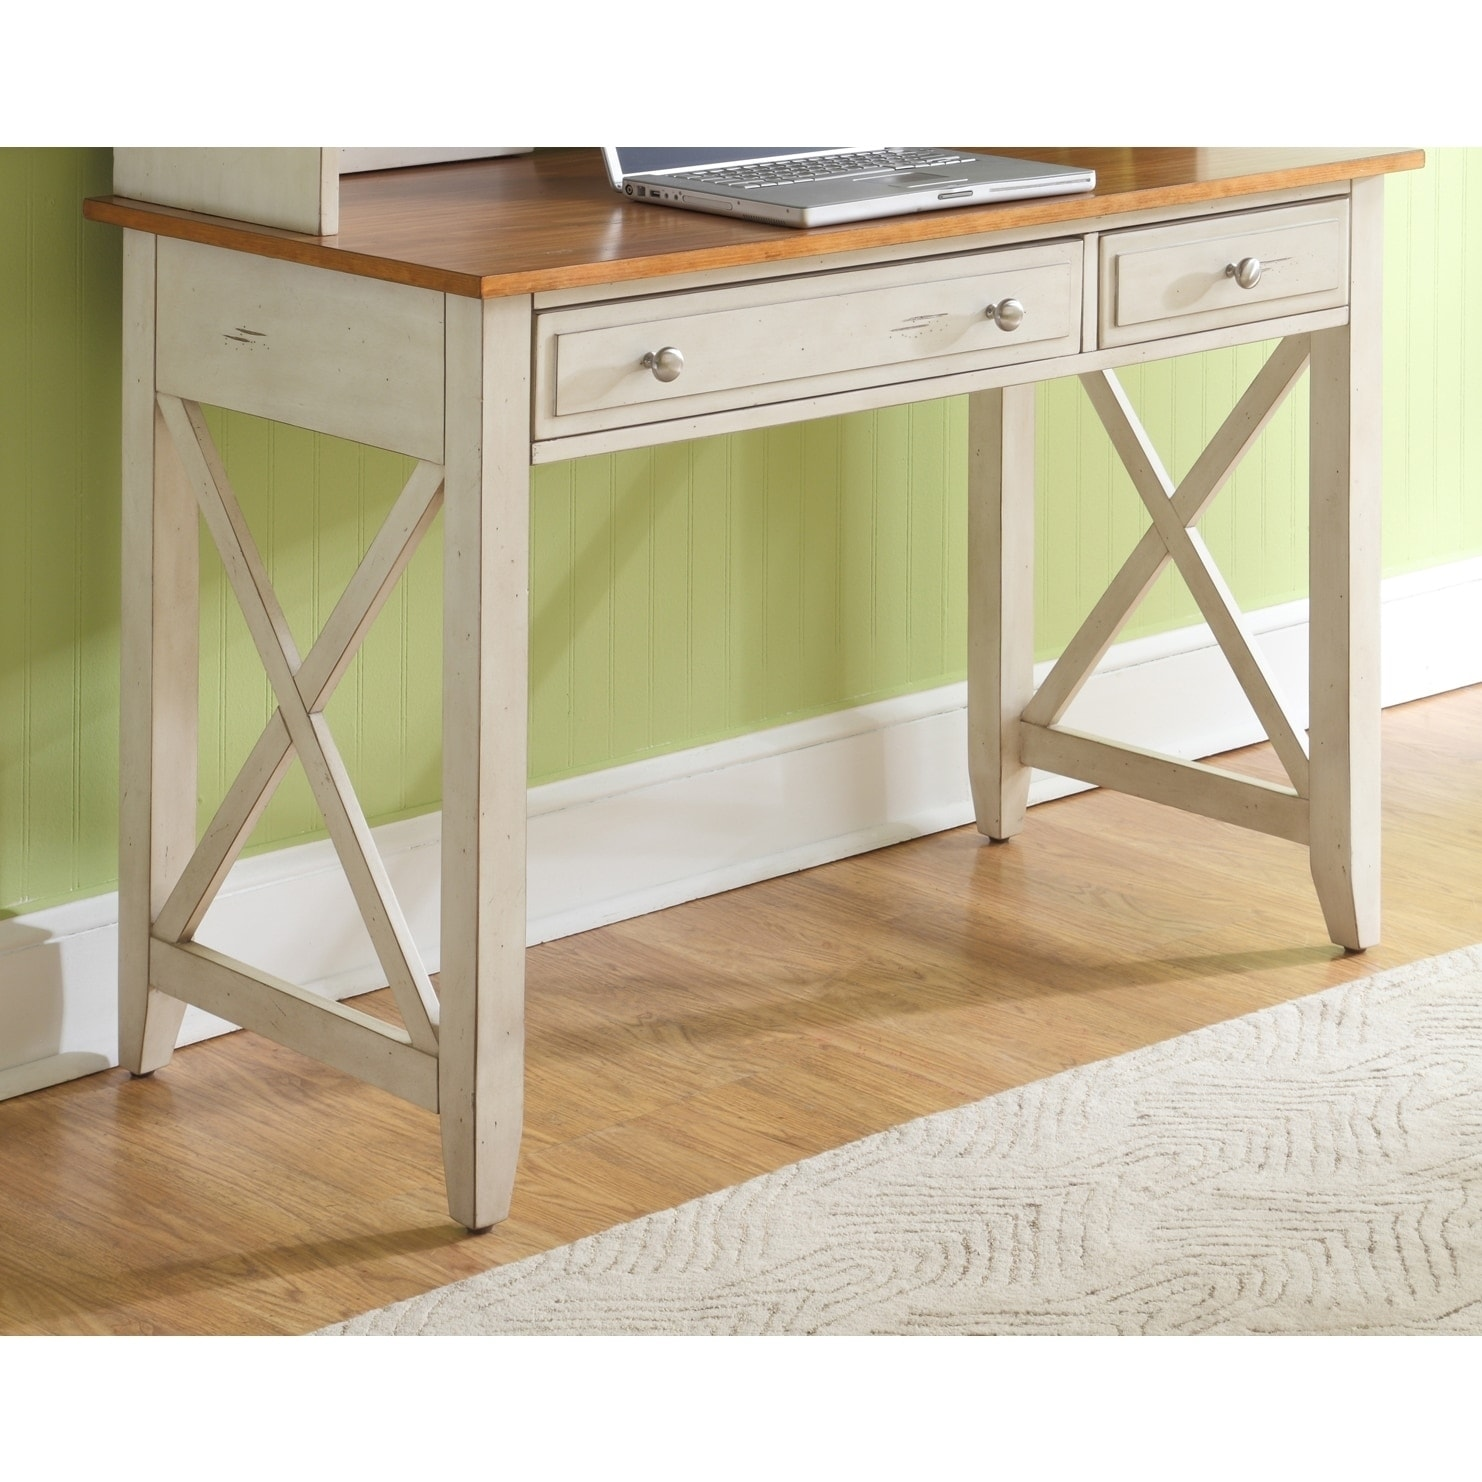 The Gray Barn Patchwork Farms Antique White And Natural Pine Writing Desk